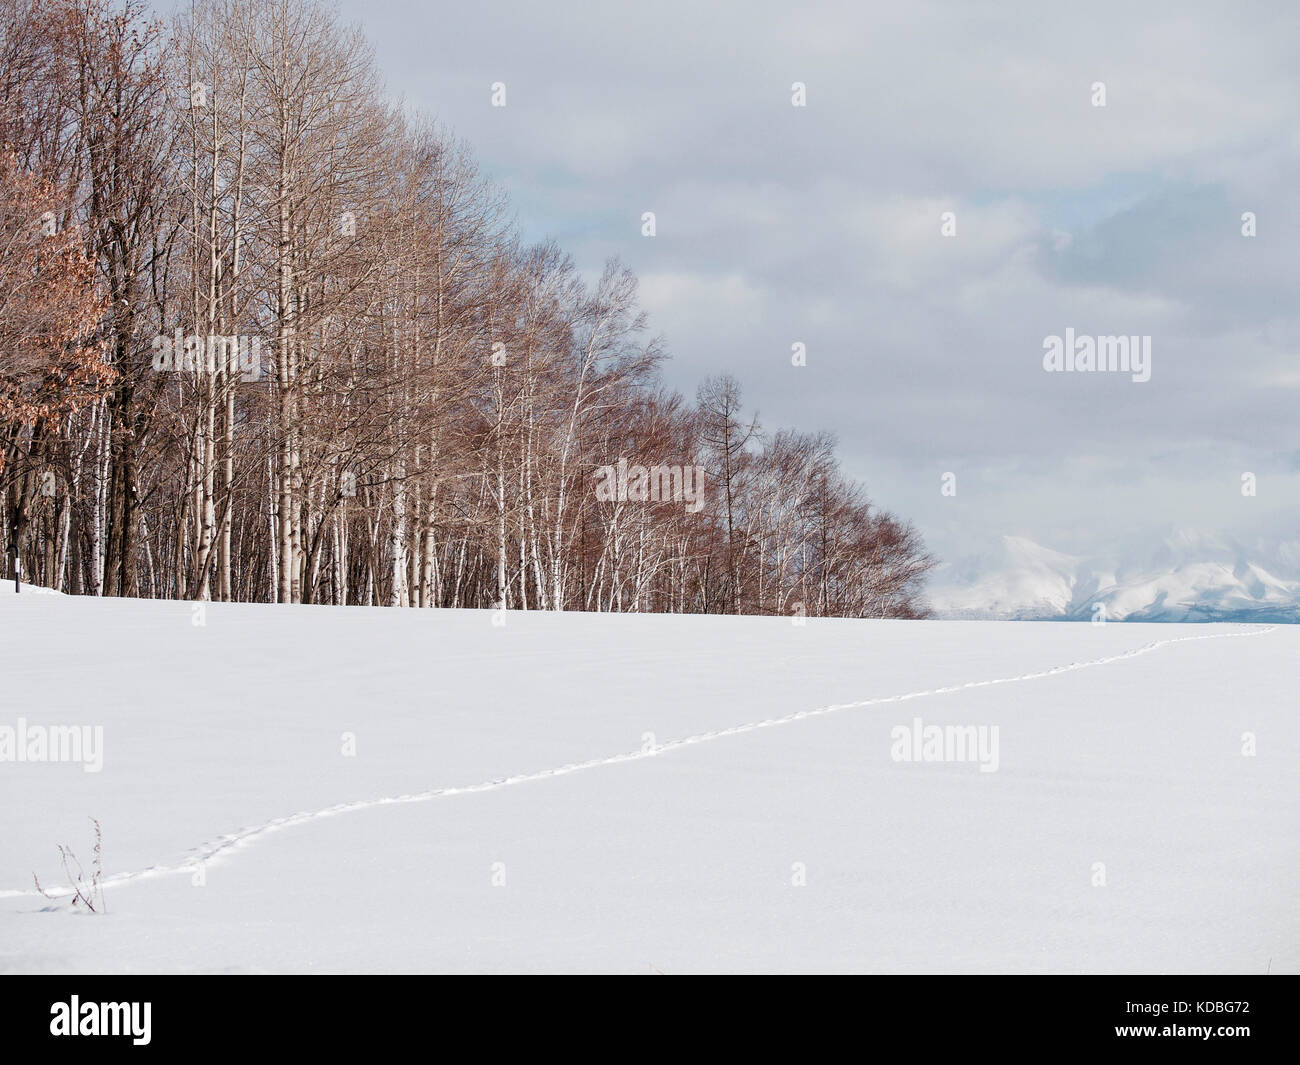 Trees and Snowfield at Biei, Hokkaido, Japan, during winter with mountain in background - Stock Image